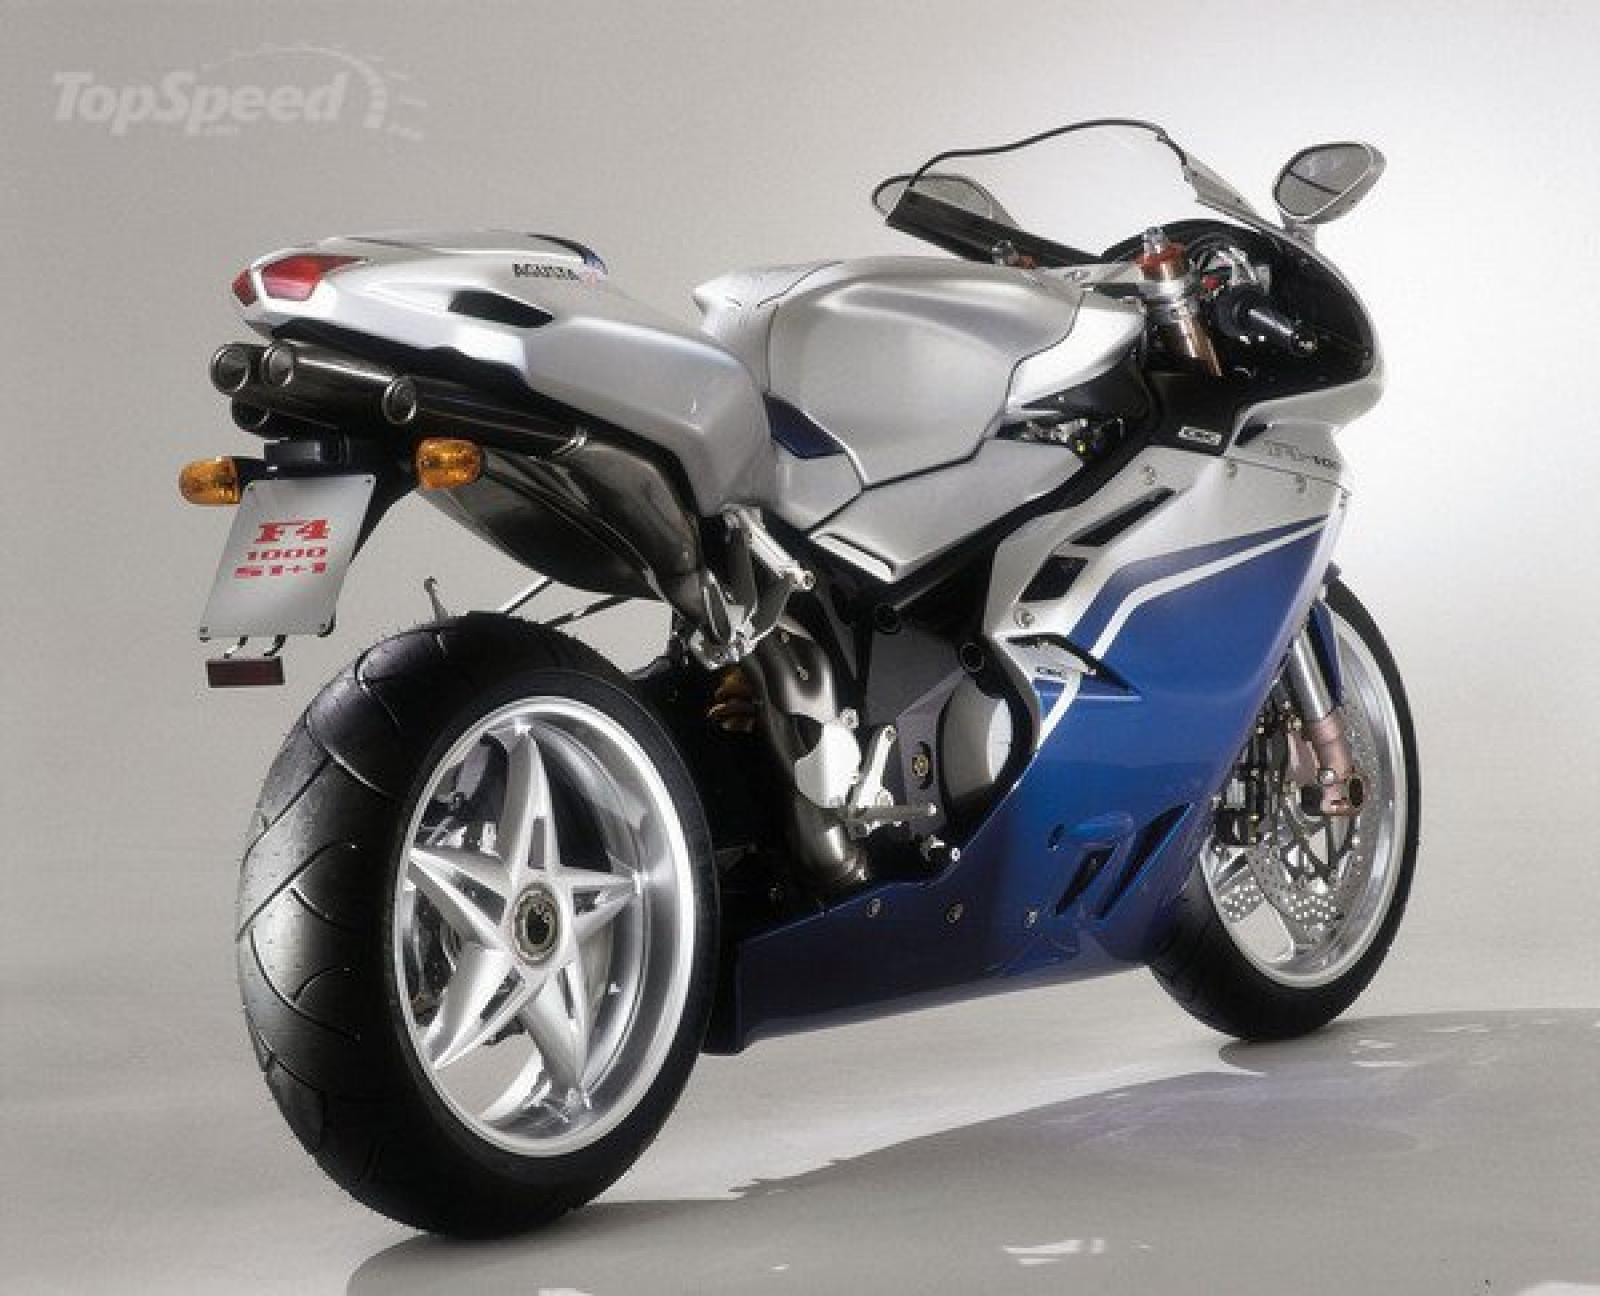 MV Agusta F4 S 1+1 2002 images #113776